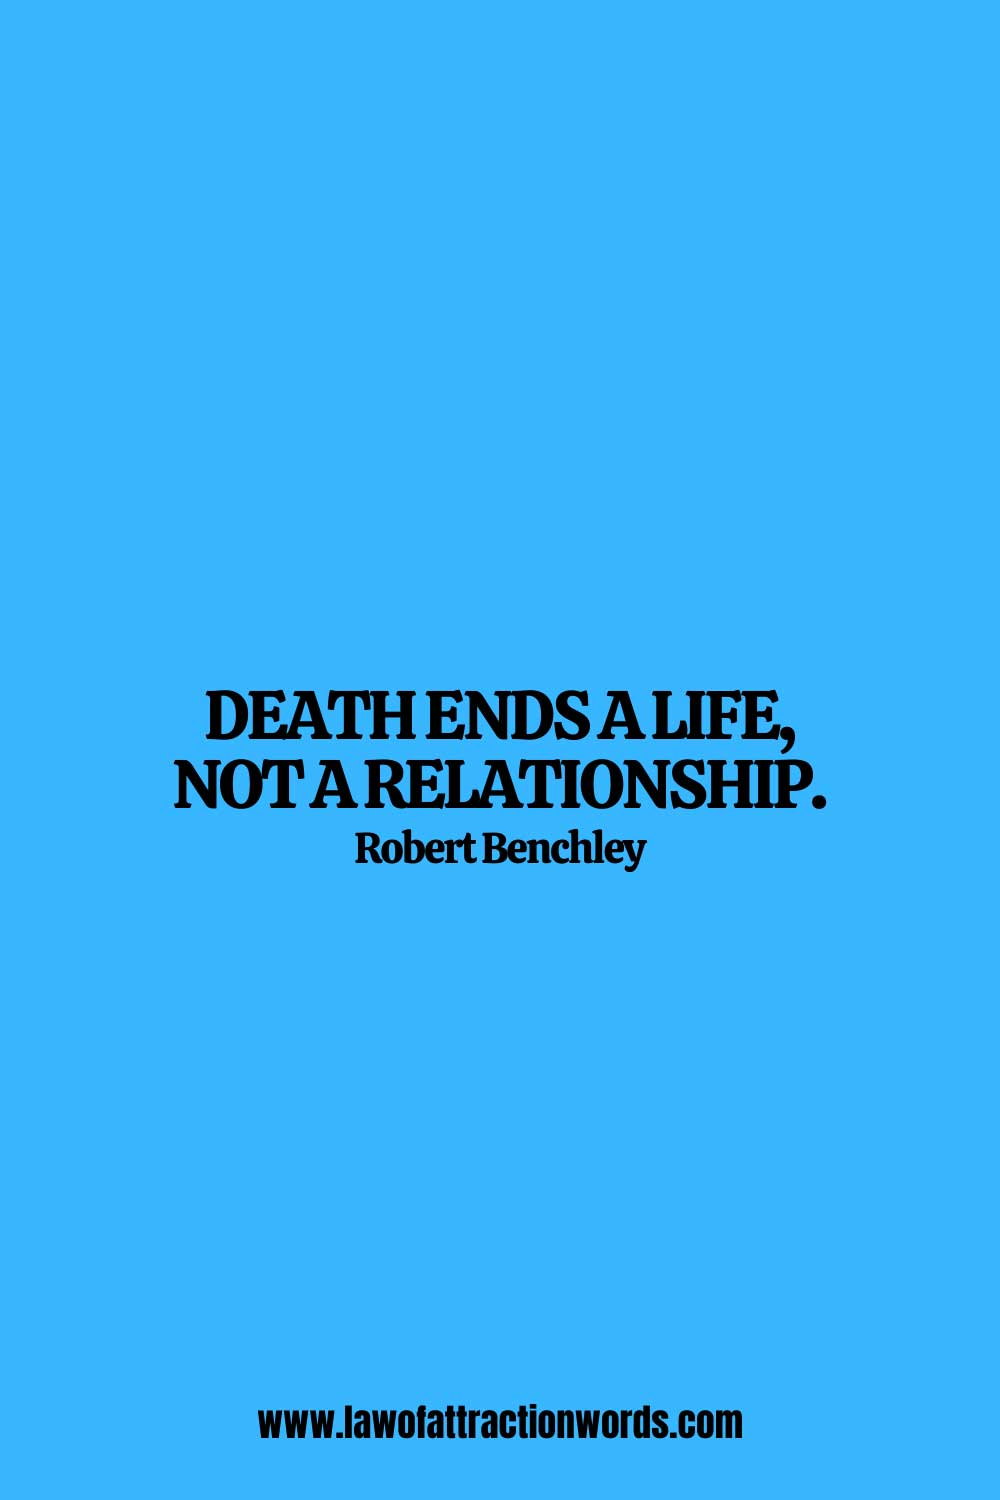 Powerful Spiritual Quotes For Death Of A Loved One